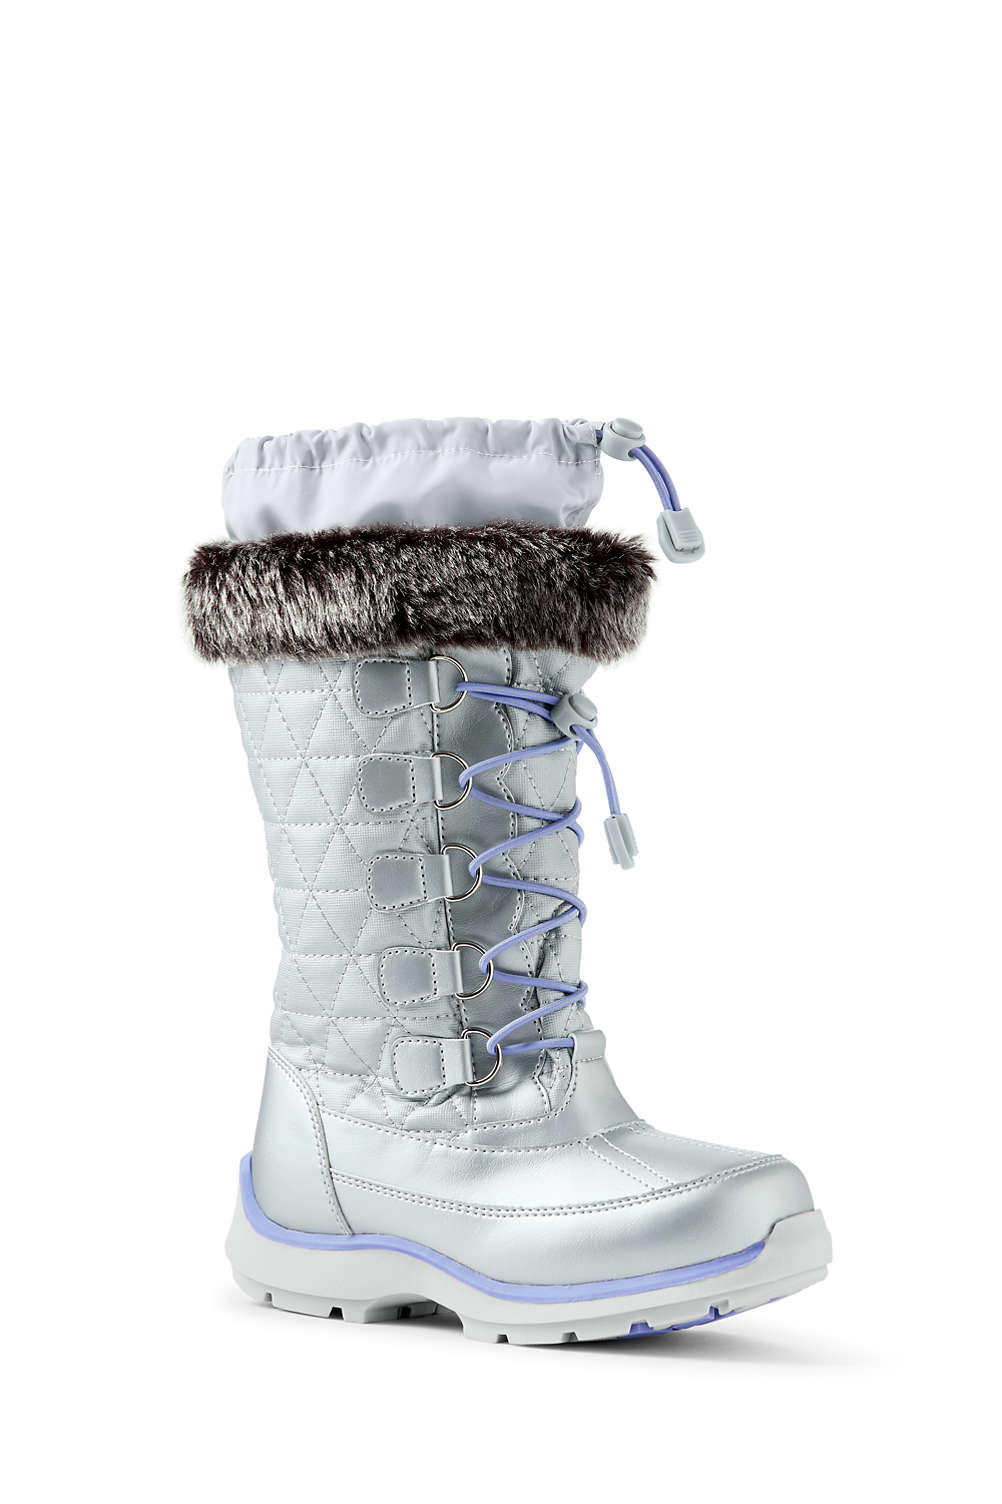 a123089de477 Girls Snowflake Winter Snow Boots from Lands  End